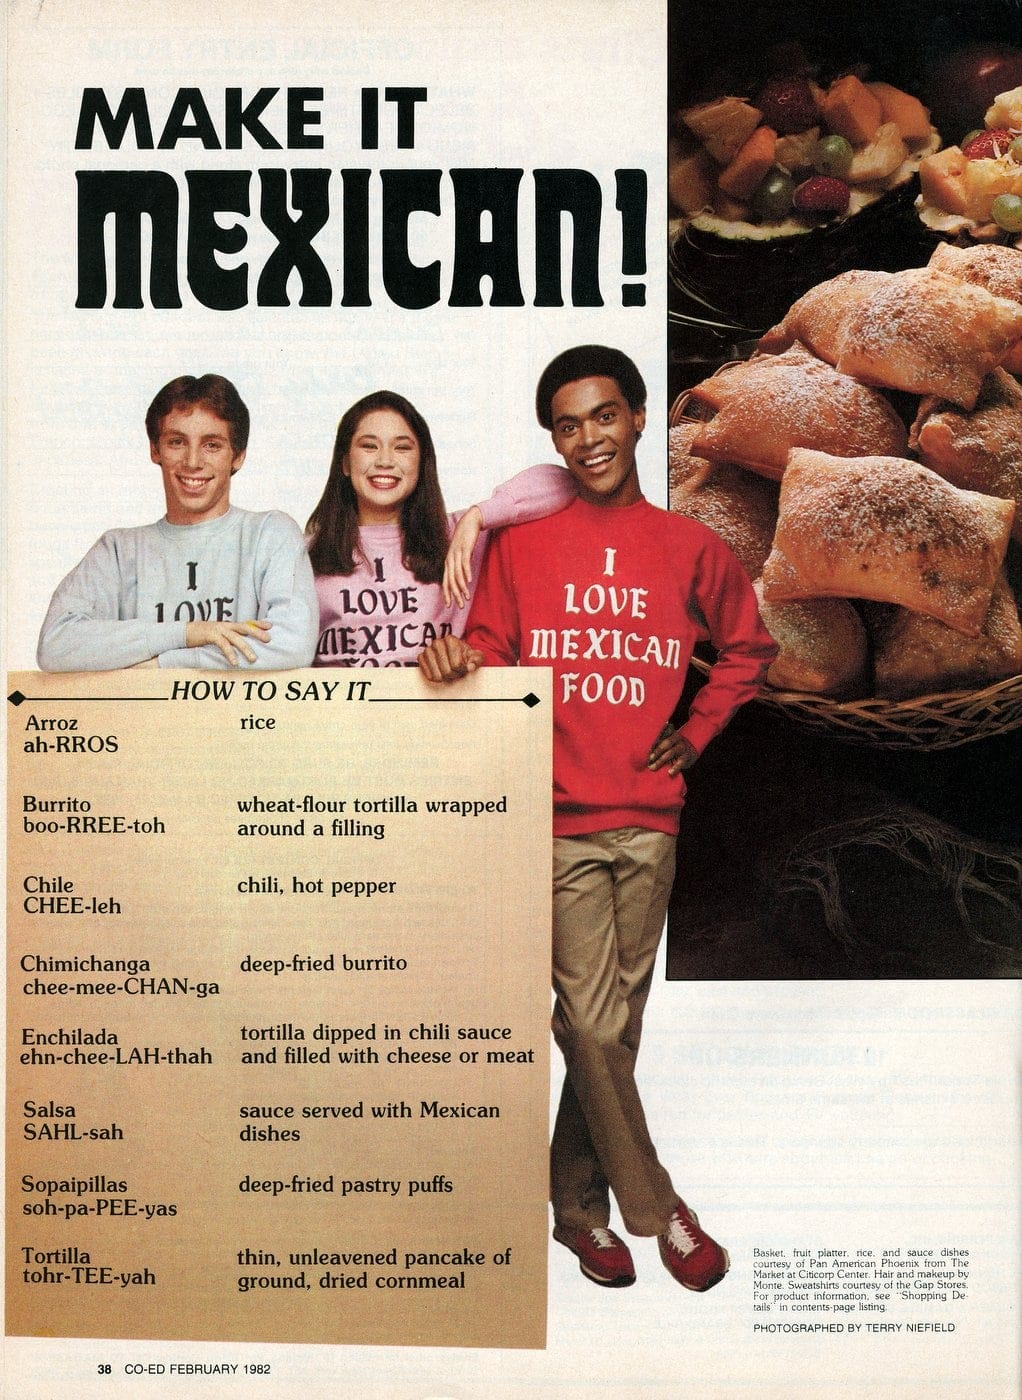 Make it Mexican - retro recipes from 1982 (2)